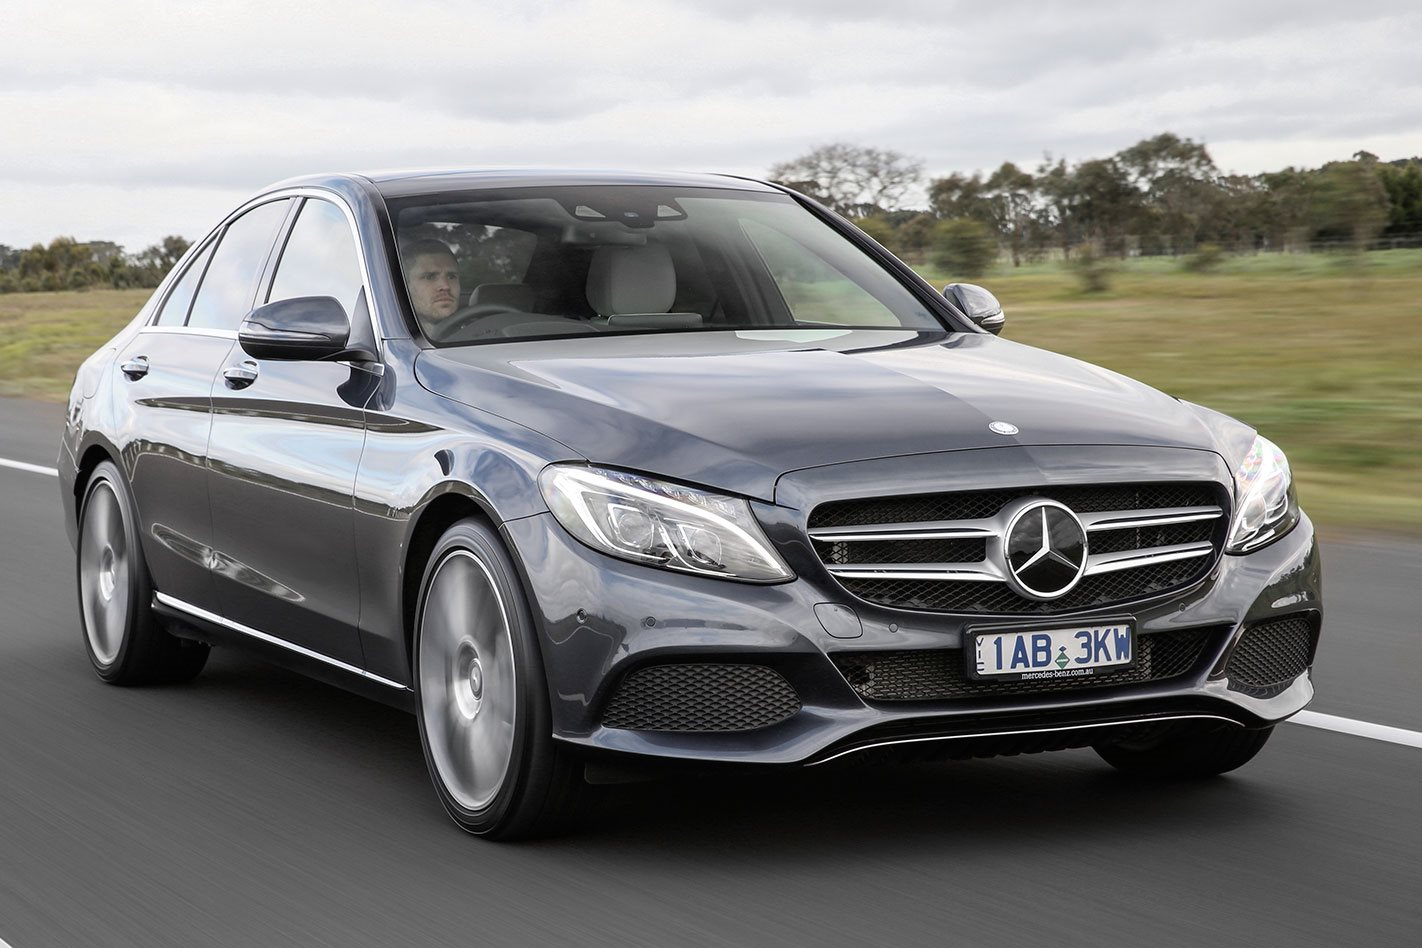 My Kia Performance >> Mercedes-Benz C-Class Review, Price and Features | WhichCar